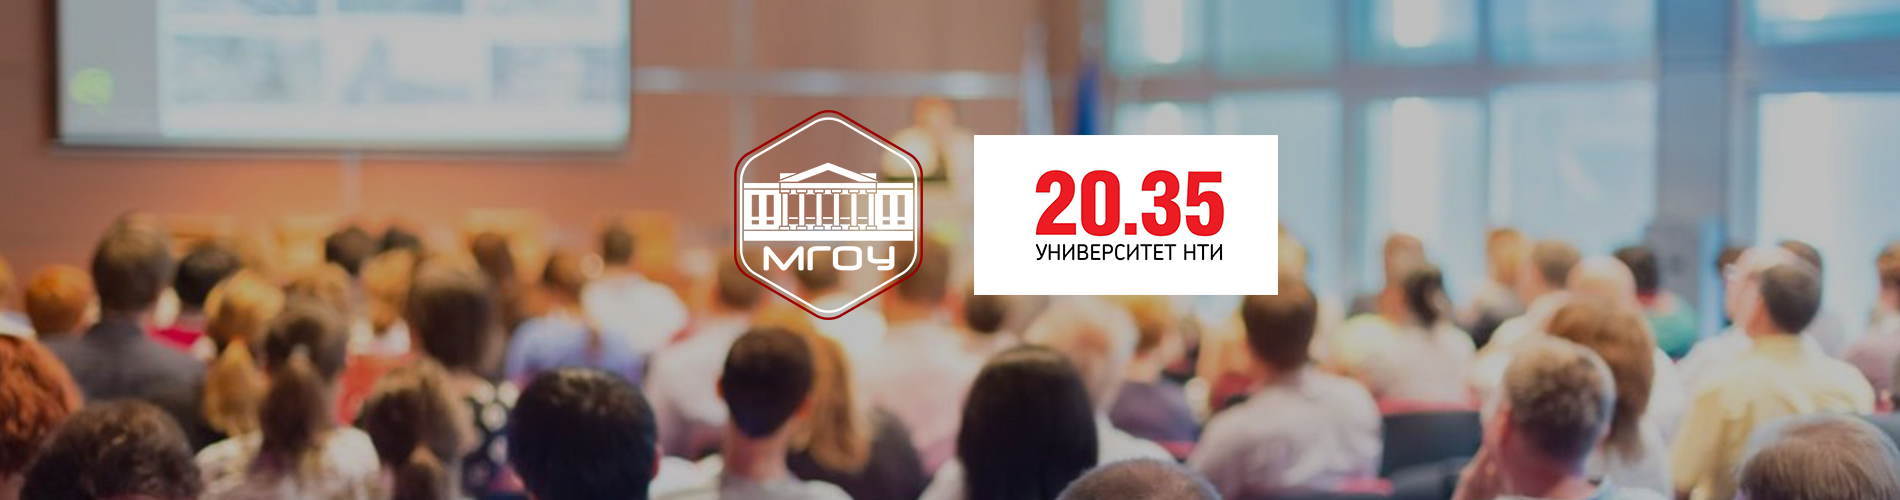 "A JOINT PROJECT OF MOSCOW REGION STATE UNIVERSITY AND NTI UNIVERSITY ""20.35"" WAS LAUNCHED"